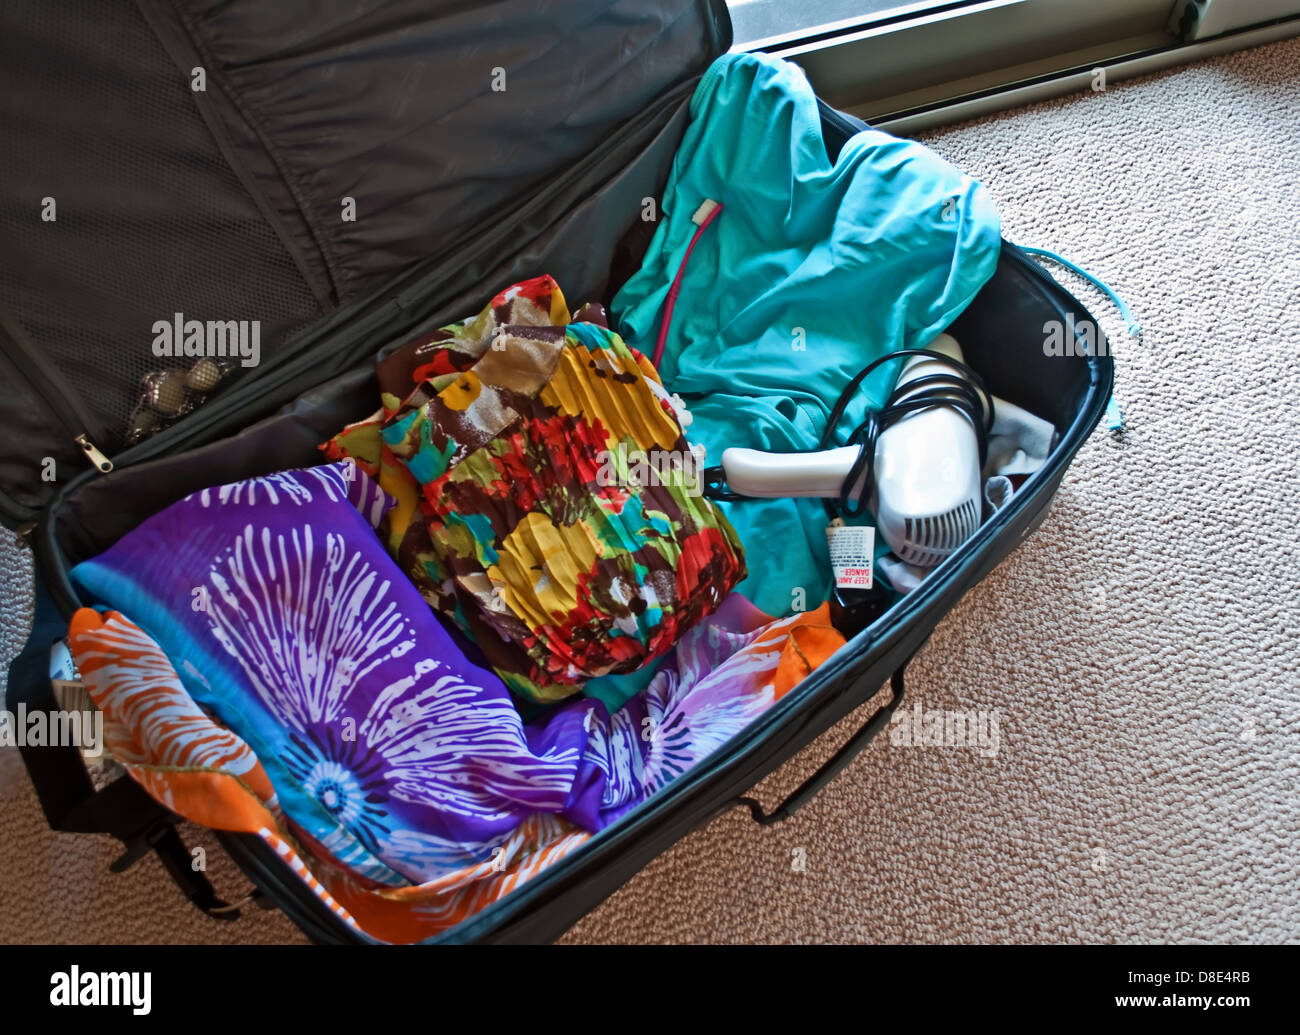 This is a suitcase packed with clothing and hair dryer, ready for a vacation concept, or travel. - Stock Image